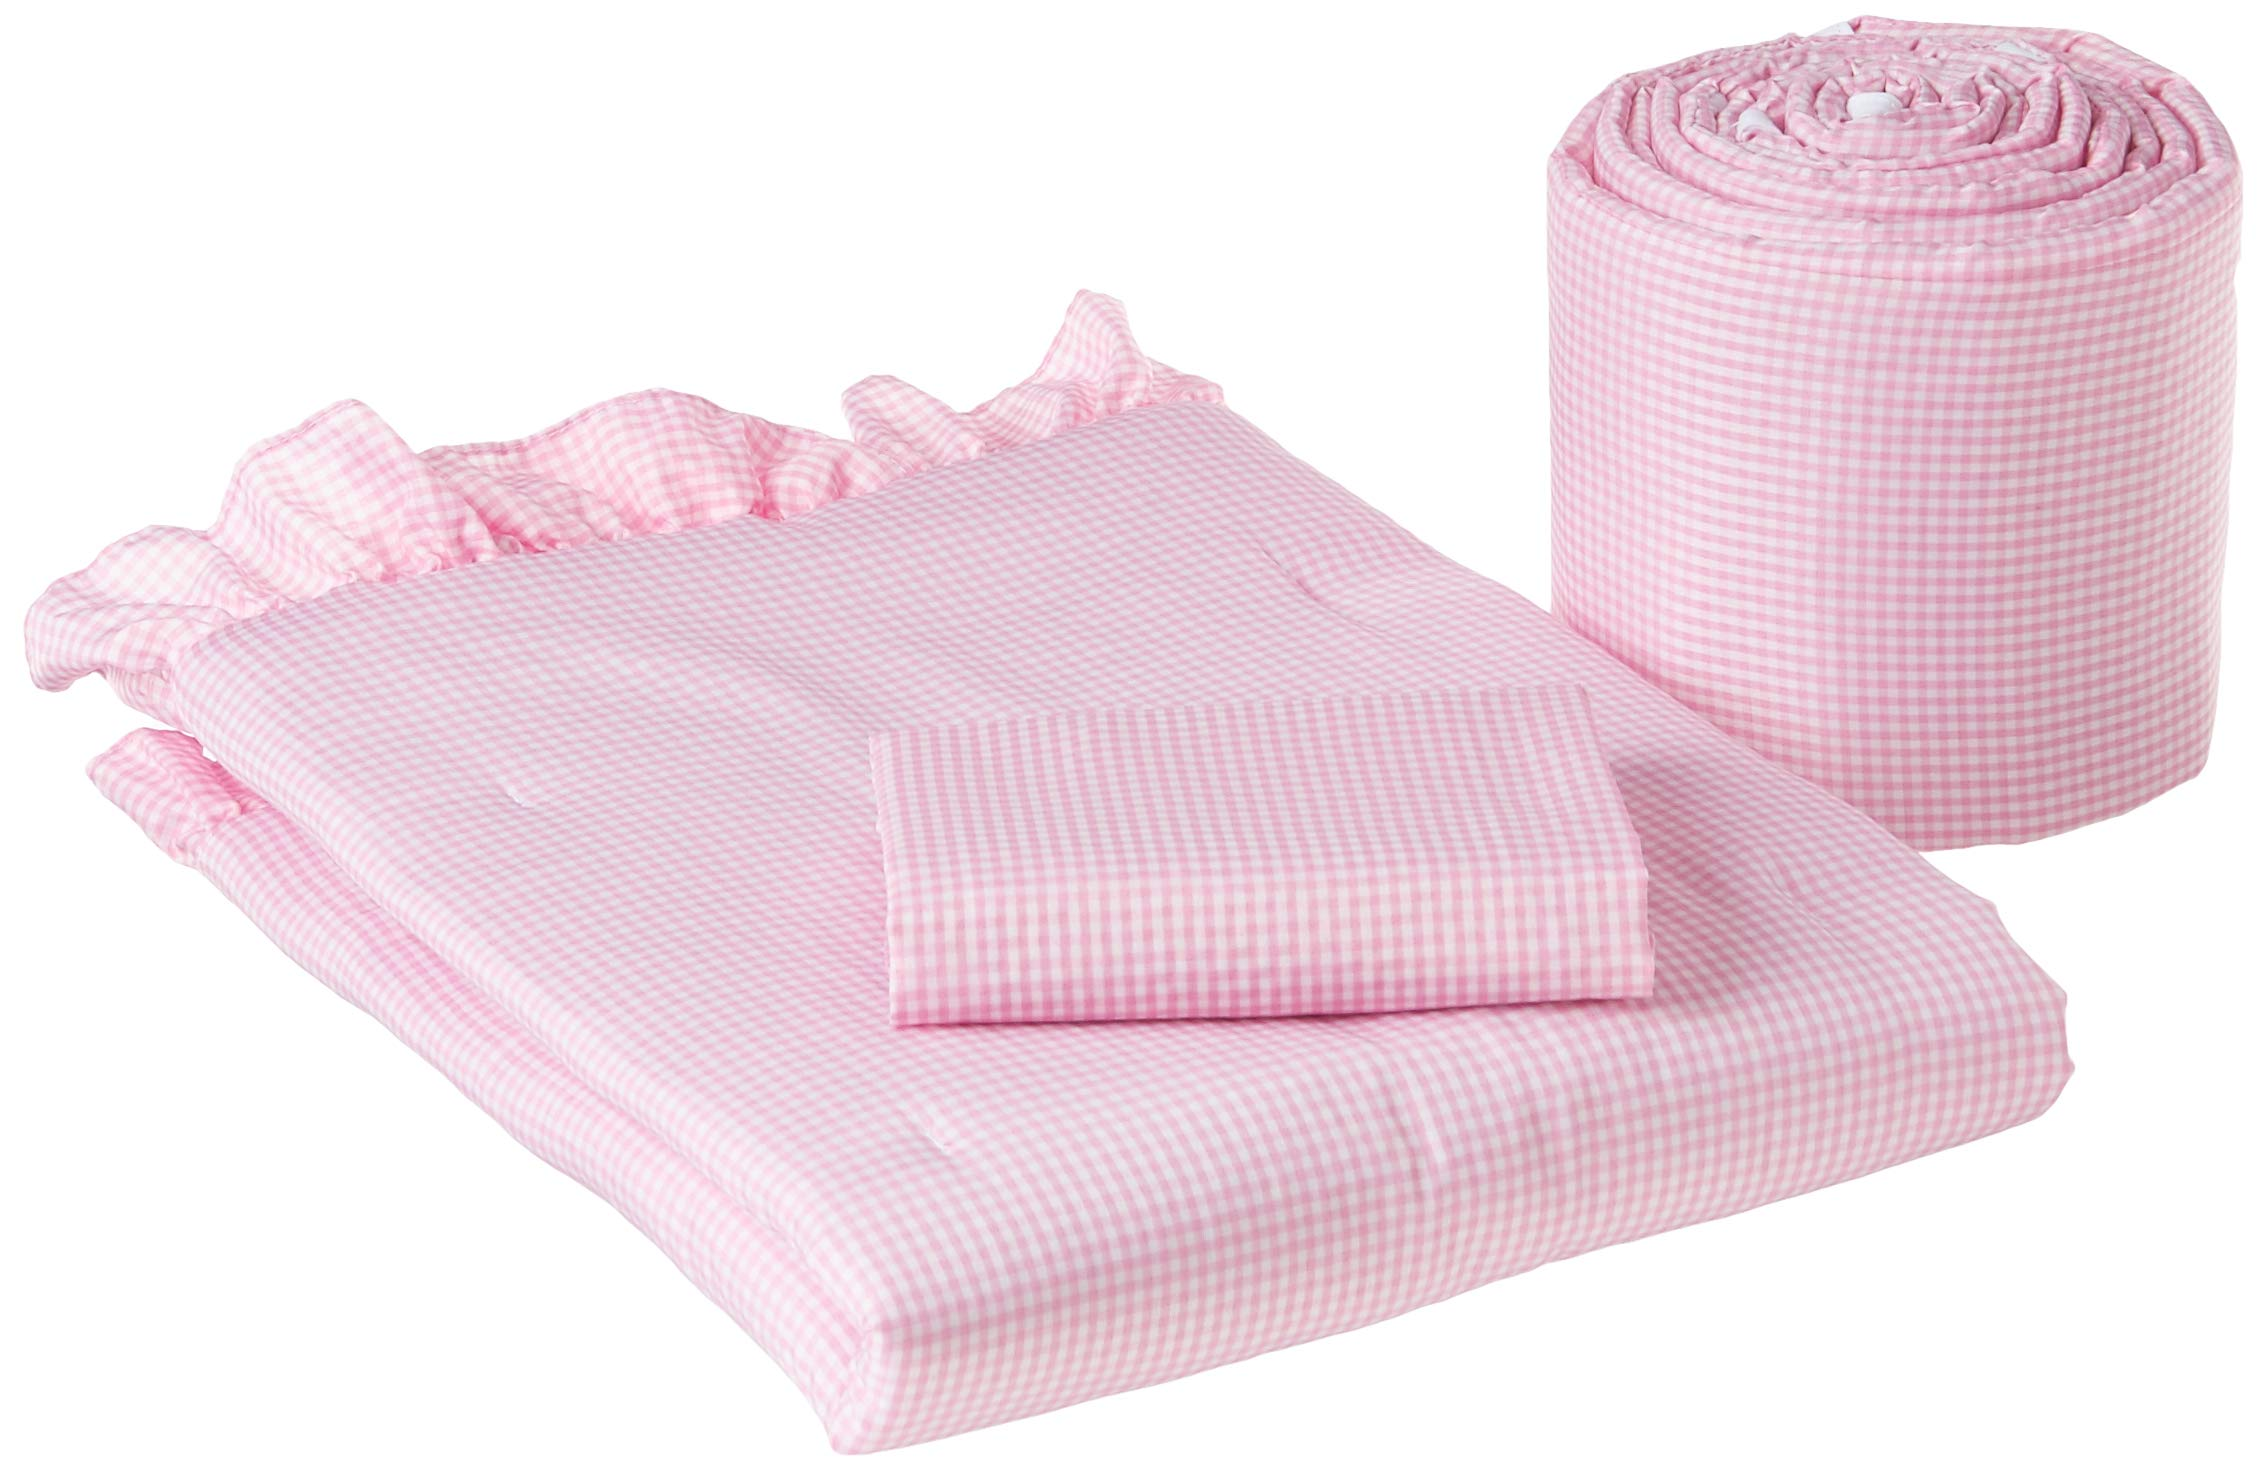 Babydoll Pink Gingham Cradle Bedding, 18'' x 36'' by BabyDoll Bedding